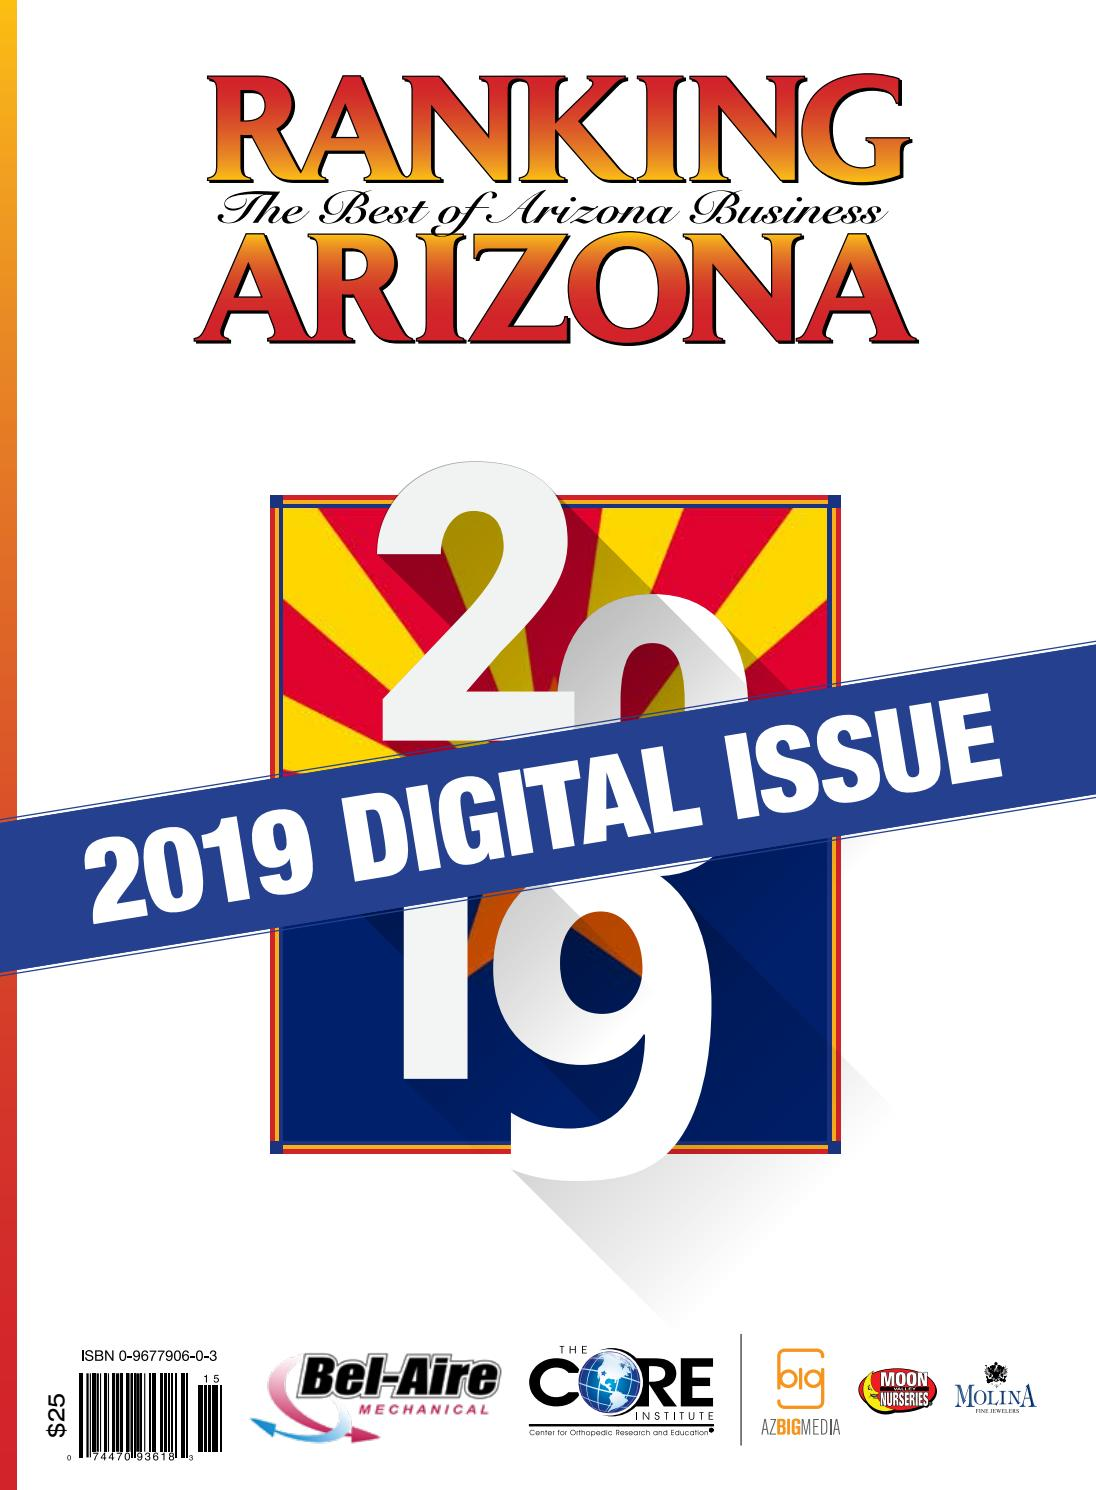 0675610b7add Ranking Arizona 2019 Digital Issue by AZ Big Media - issuu